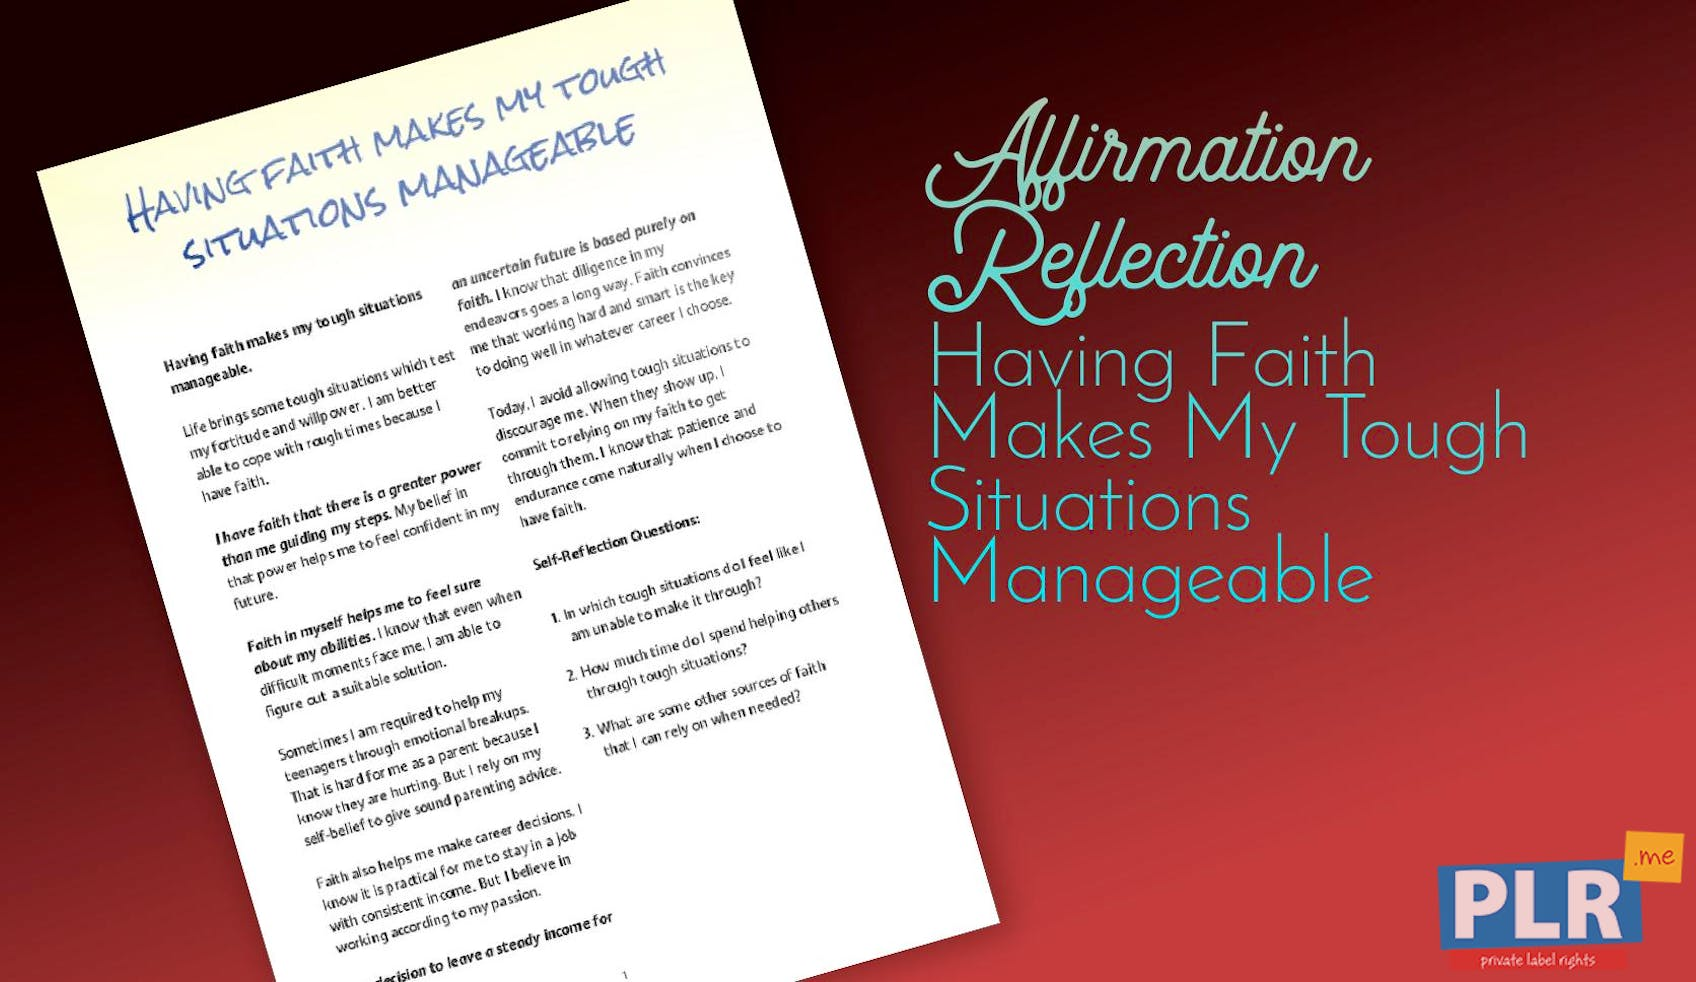 Having Faith Makes My Tough Situations Manageable